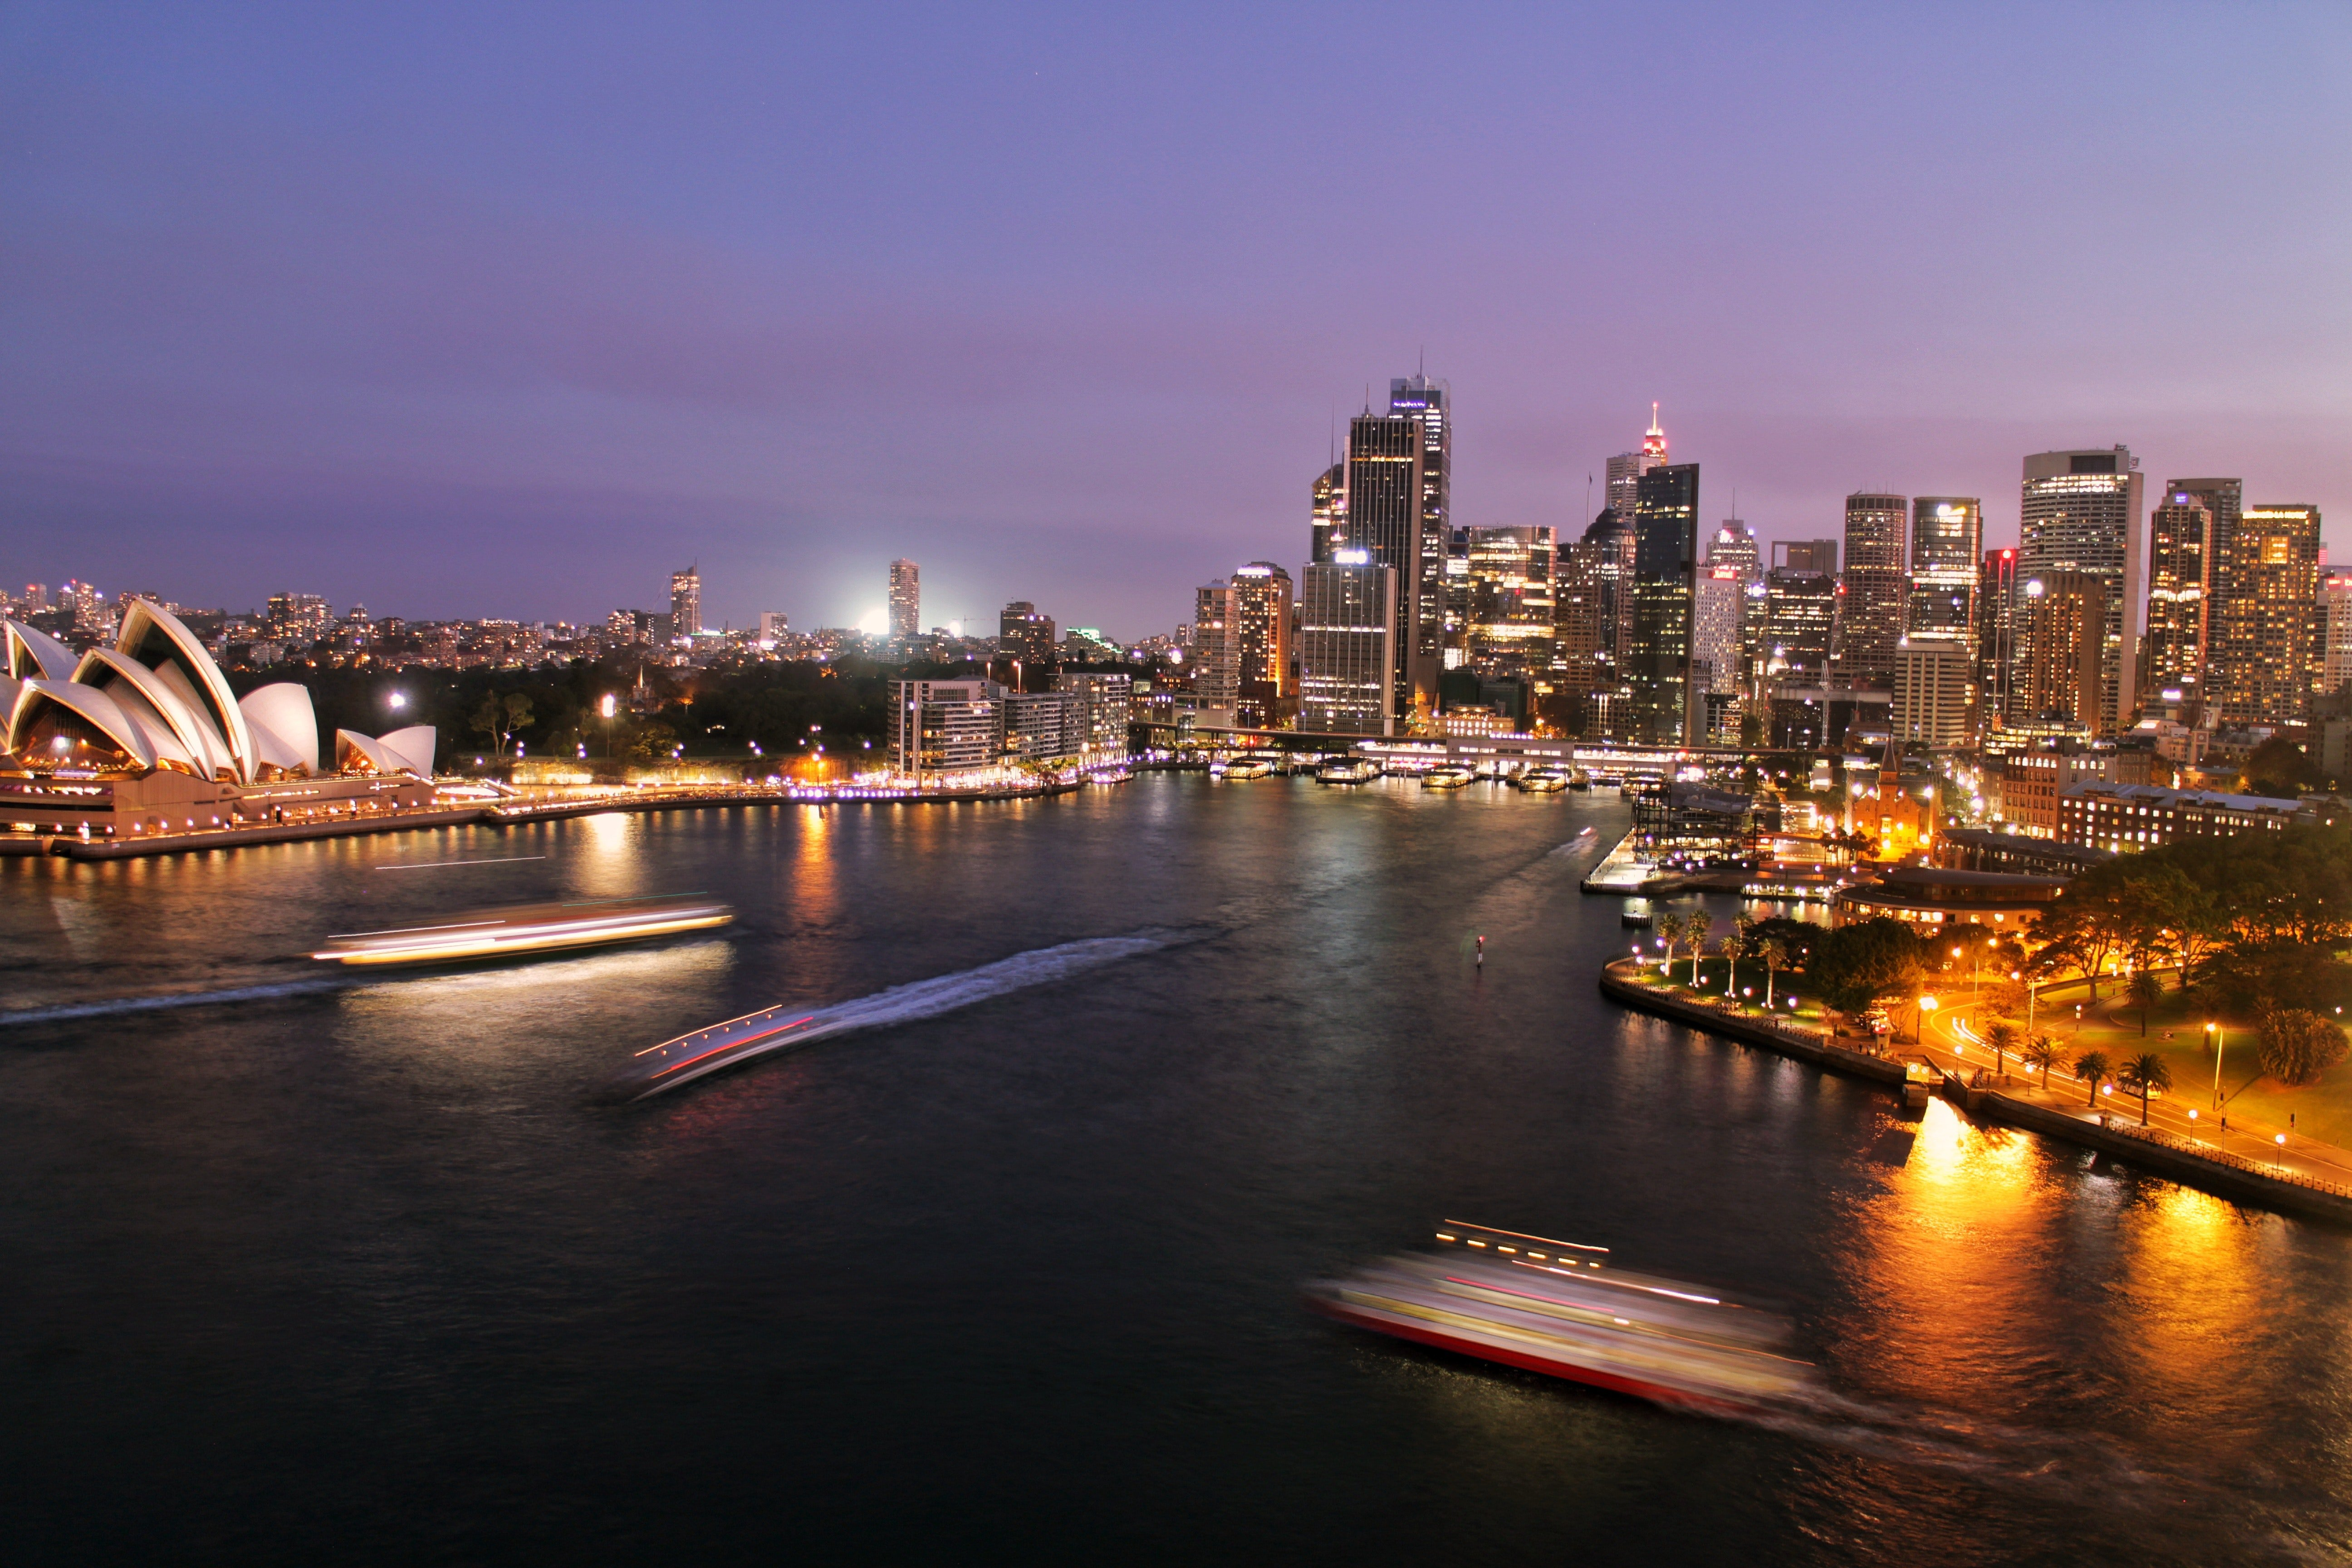 Pictured - An aerial view of Sydney,  Australia   Source: Pexels